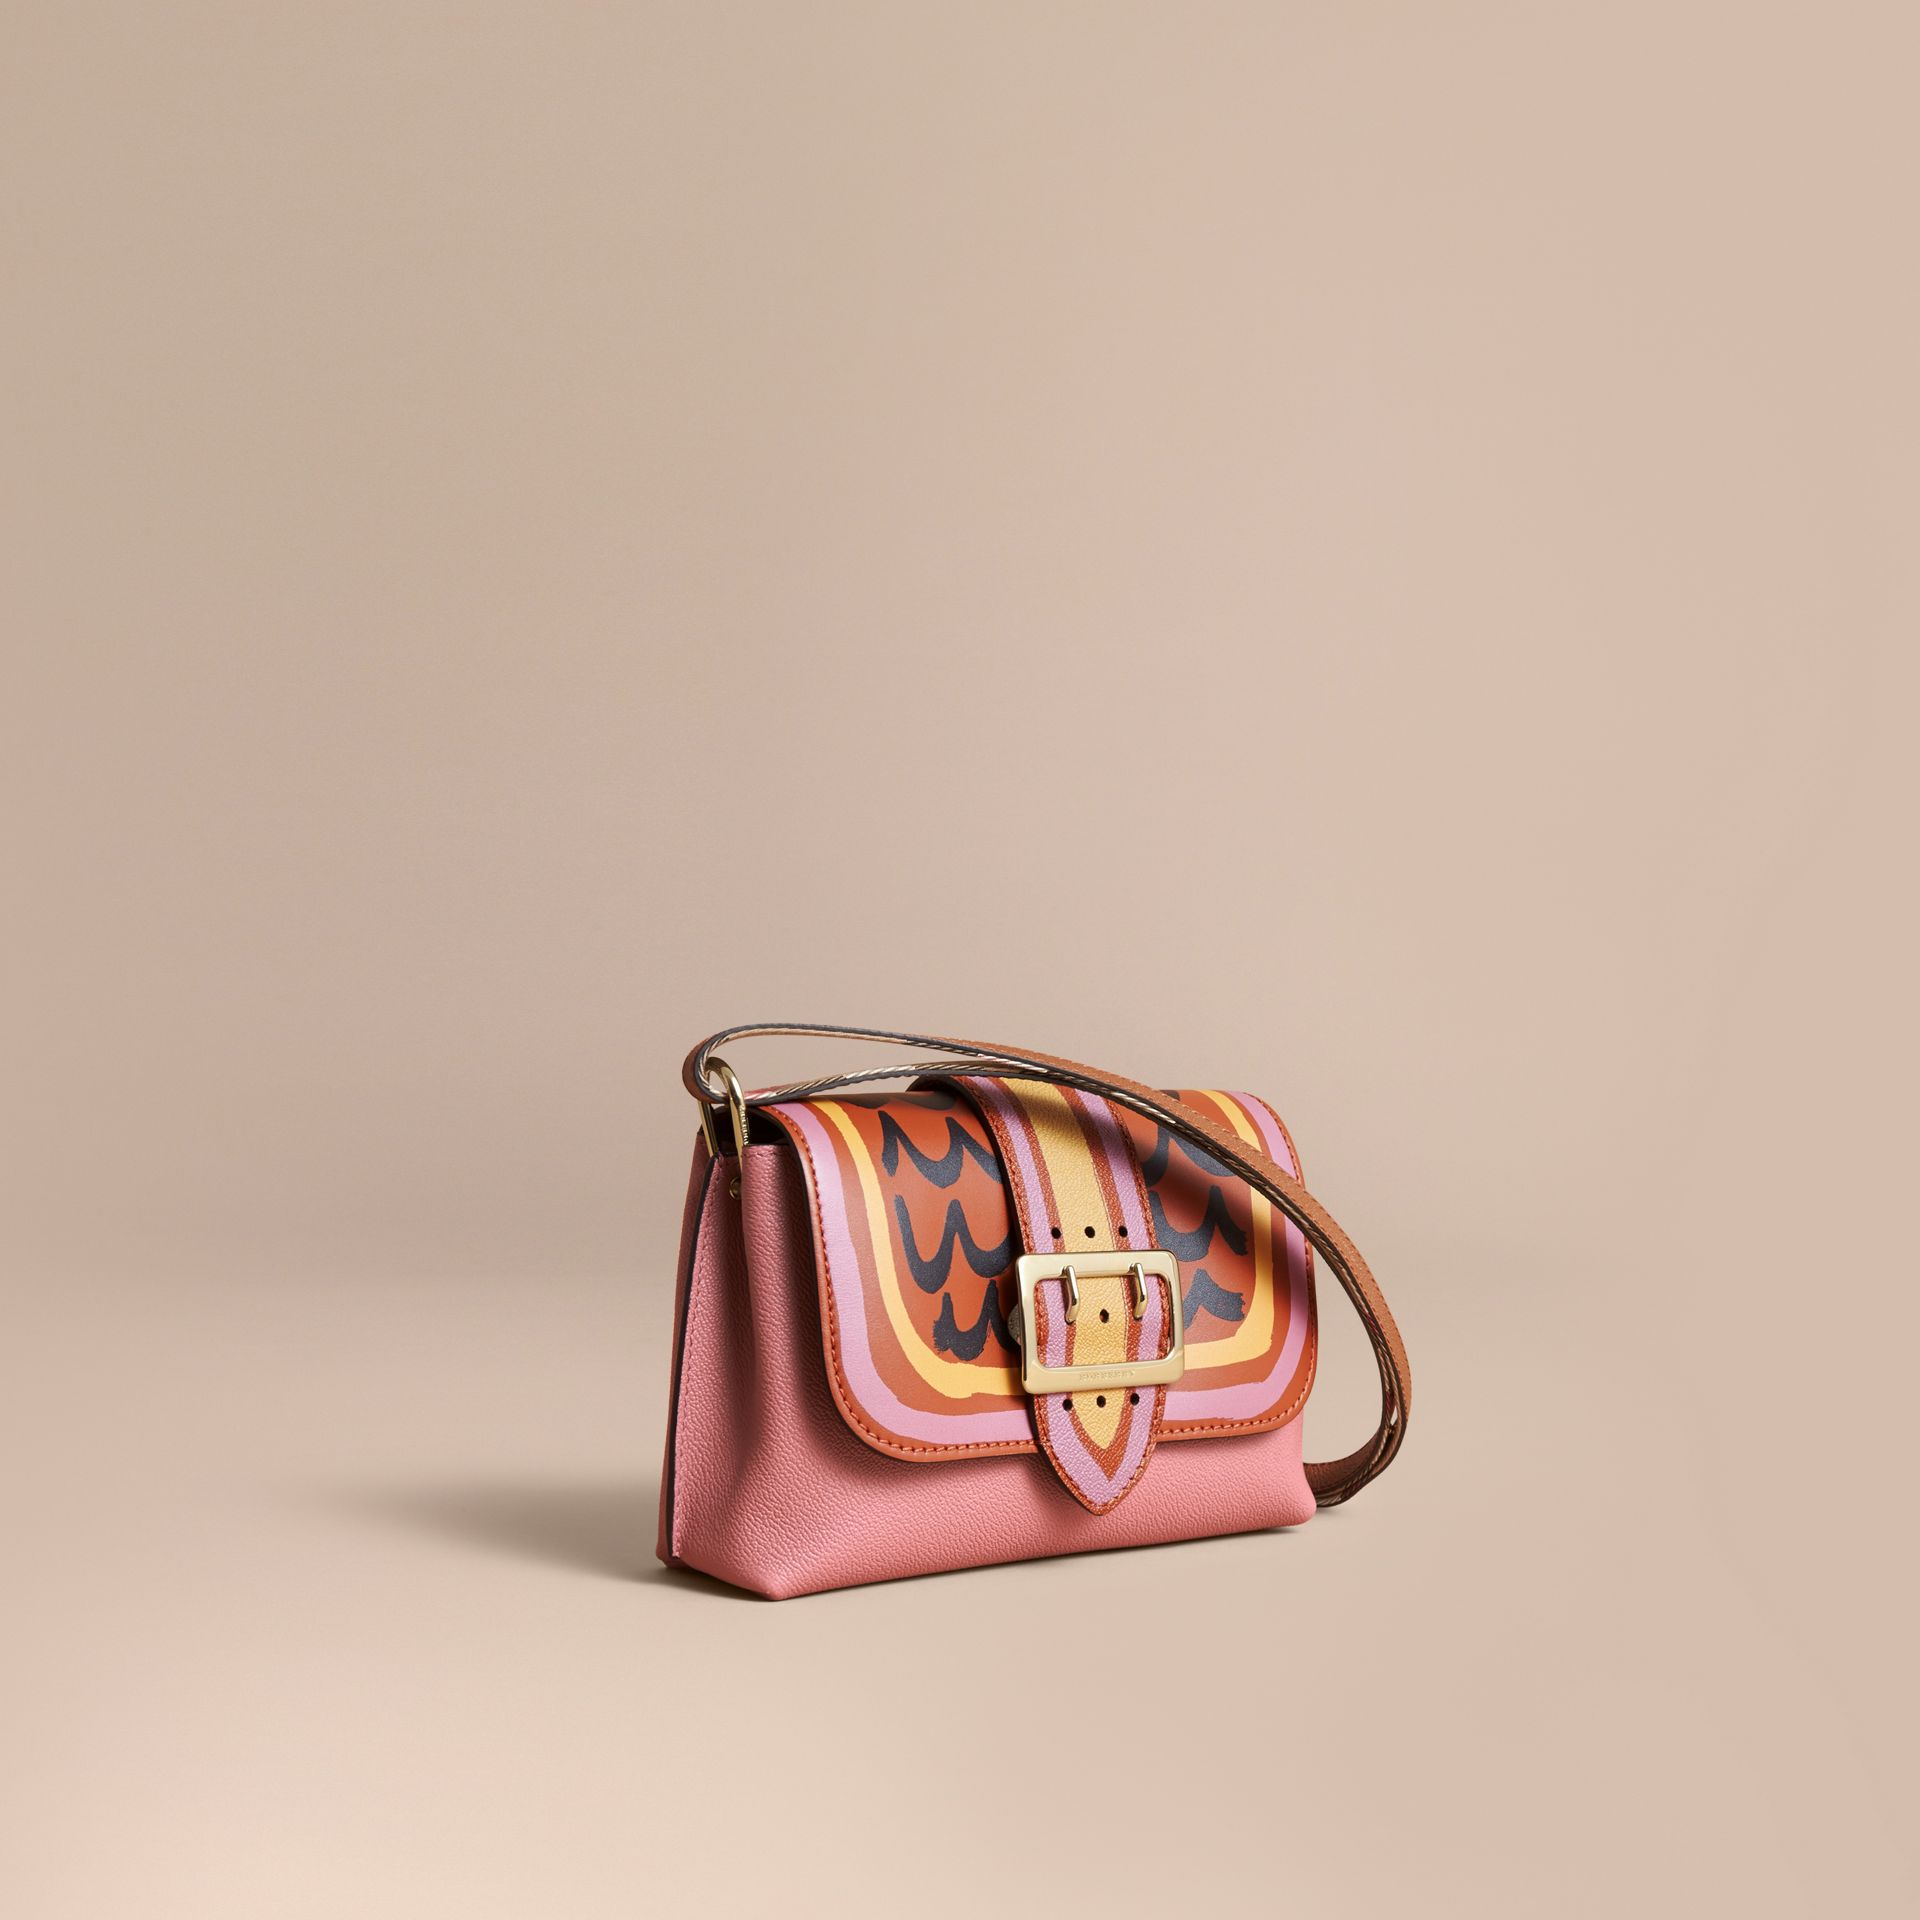 The Buckle Crossbody Bag in Trompe L'oeil Leather in Dusty Pink/bright Toffee - gallery image 1